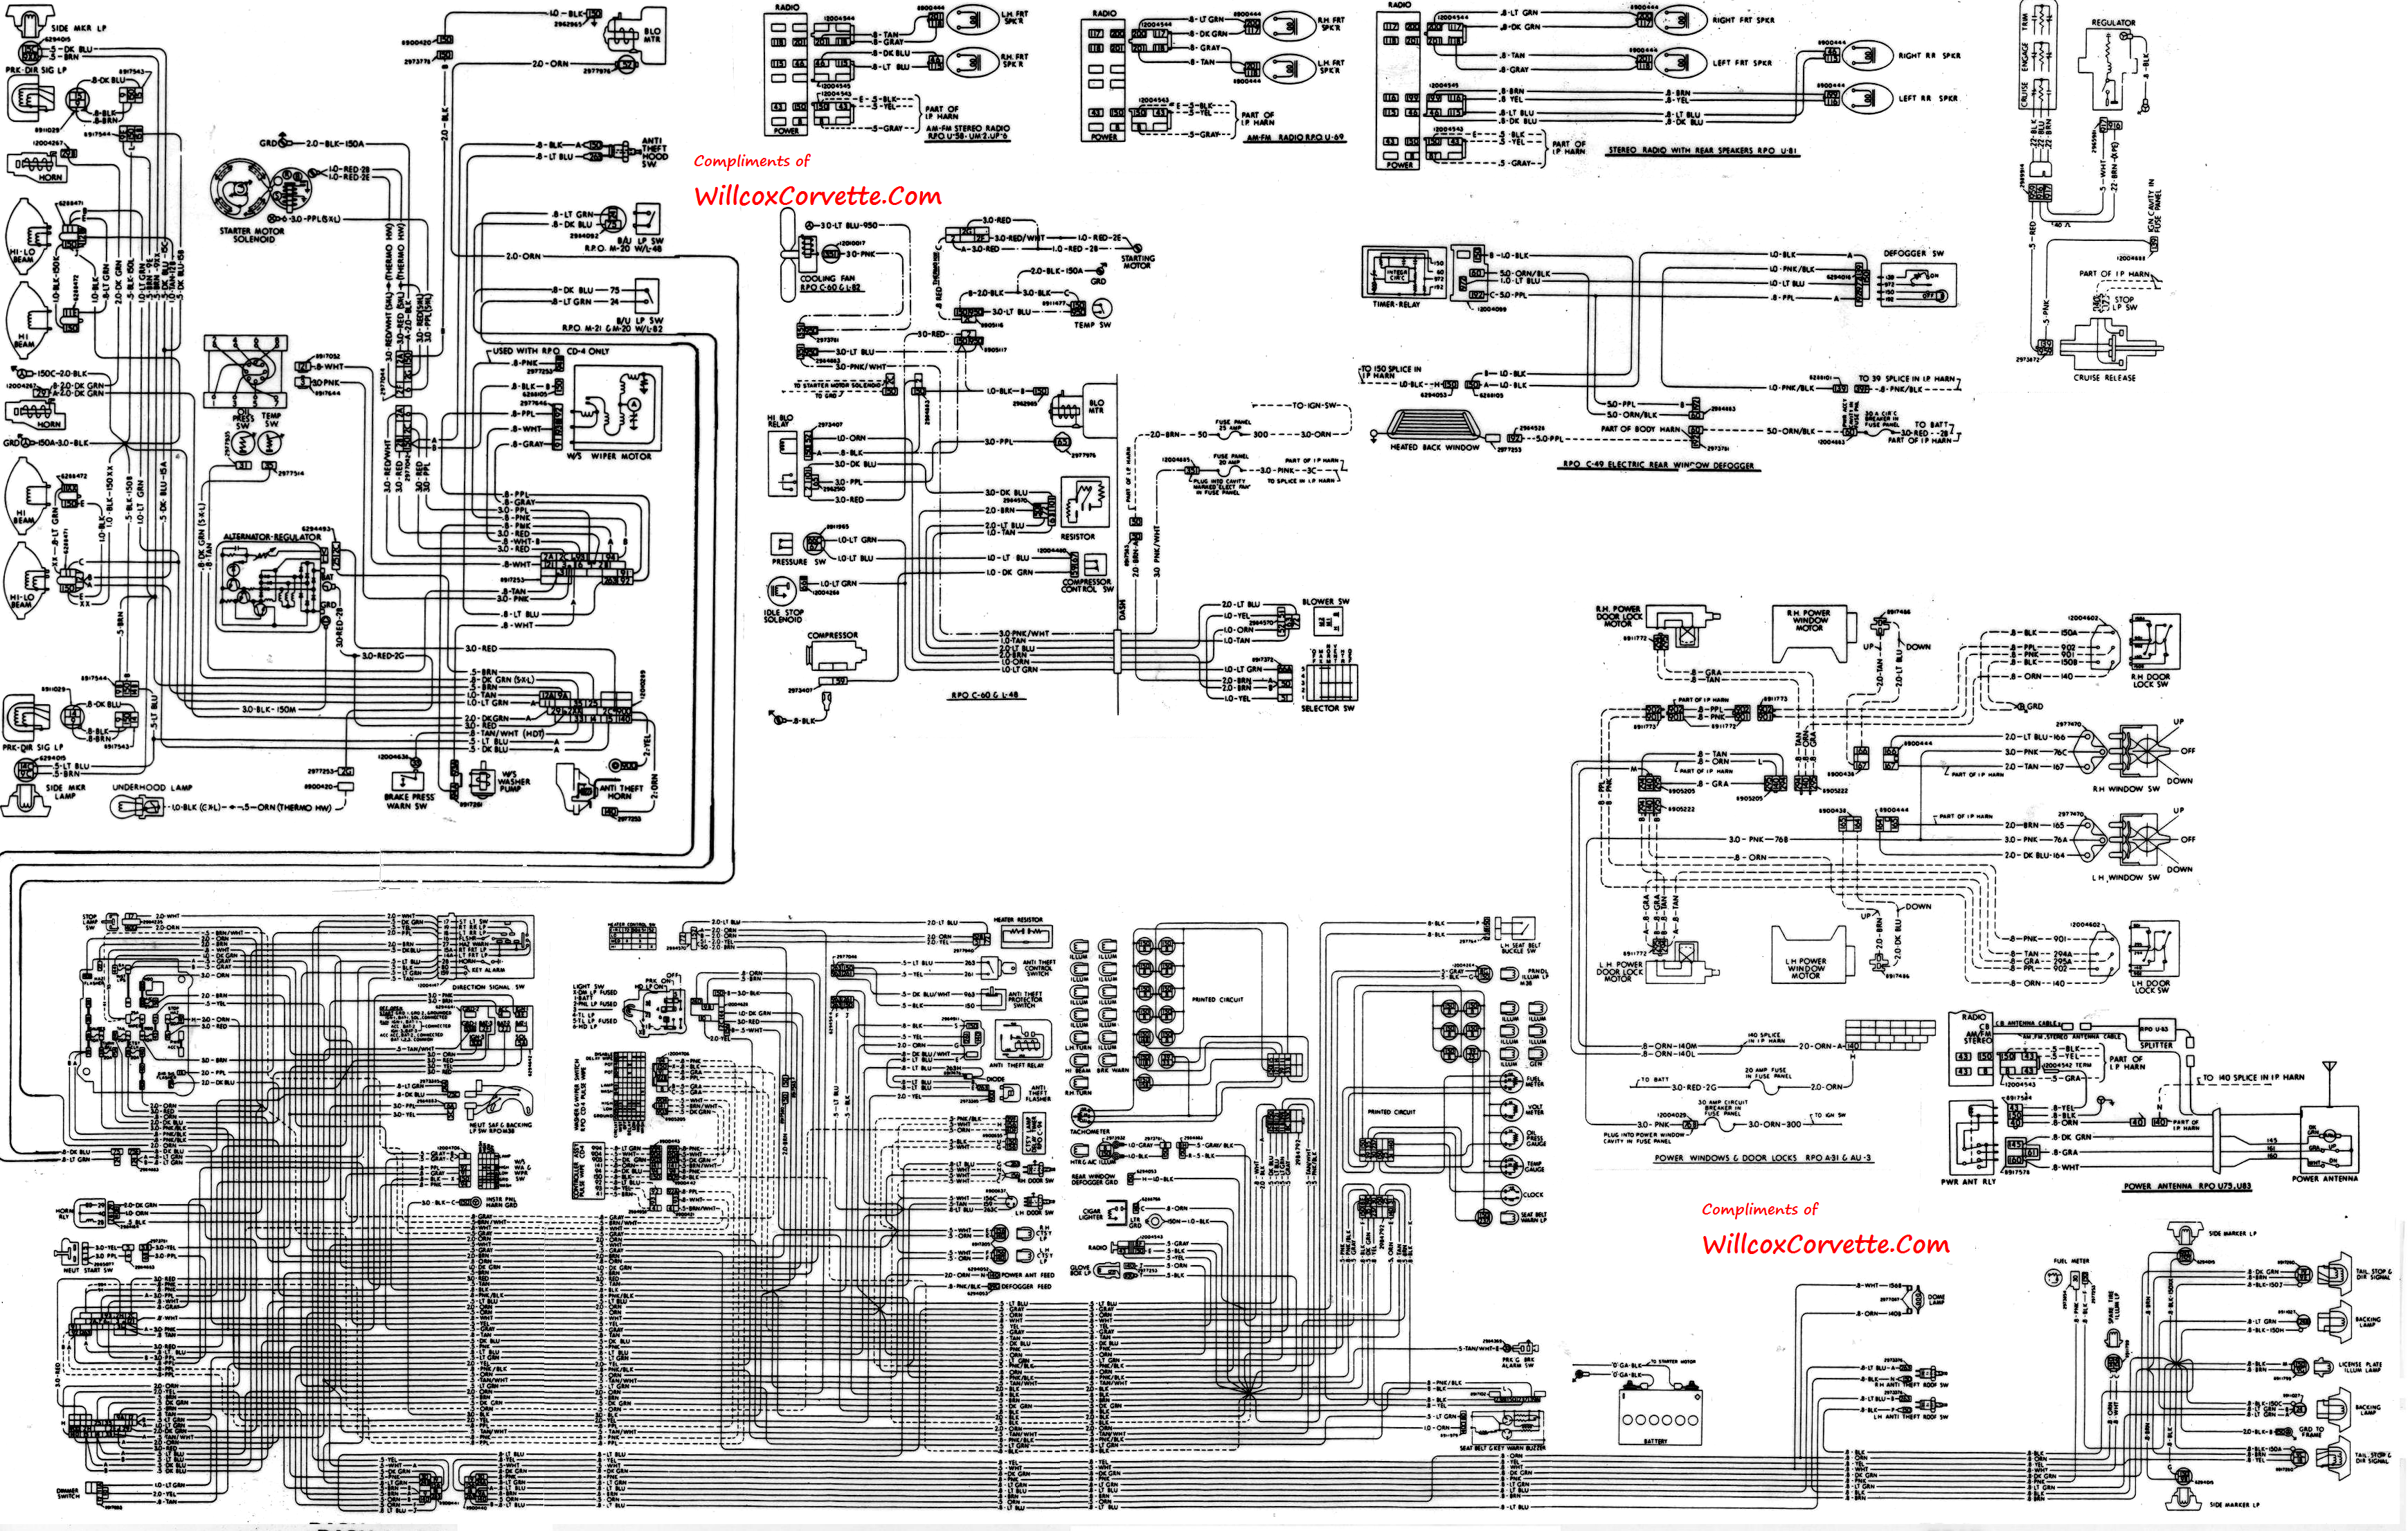 1979 wire diagram 2000 corvette wiring diagram on 2000 download wirning diagrams Corvette Schematics Diagrams at crackthecode.co